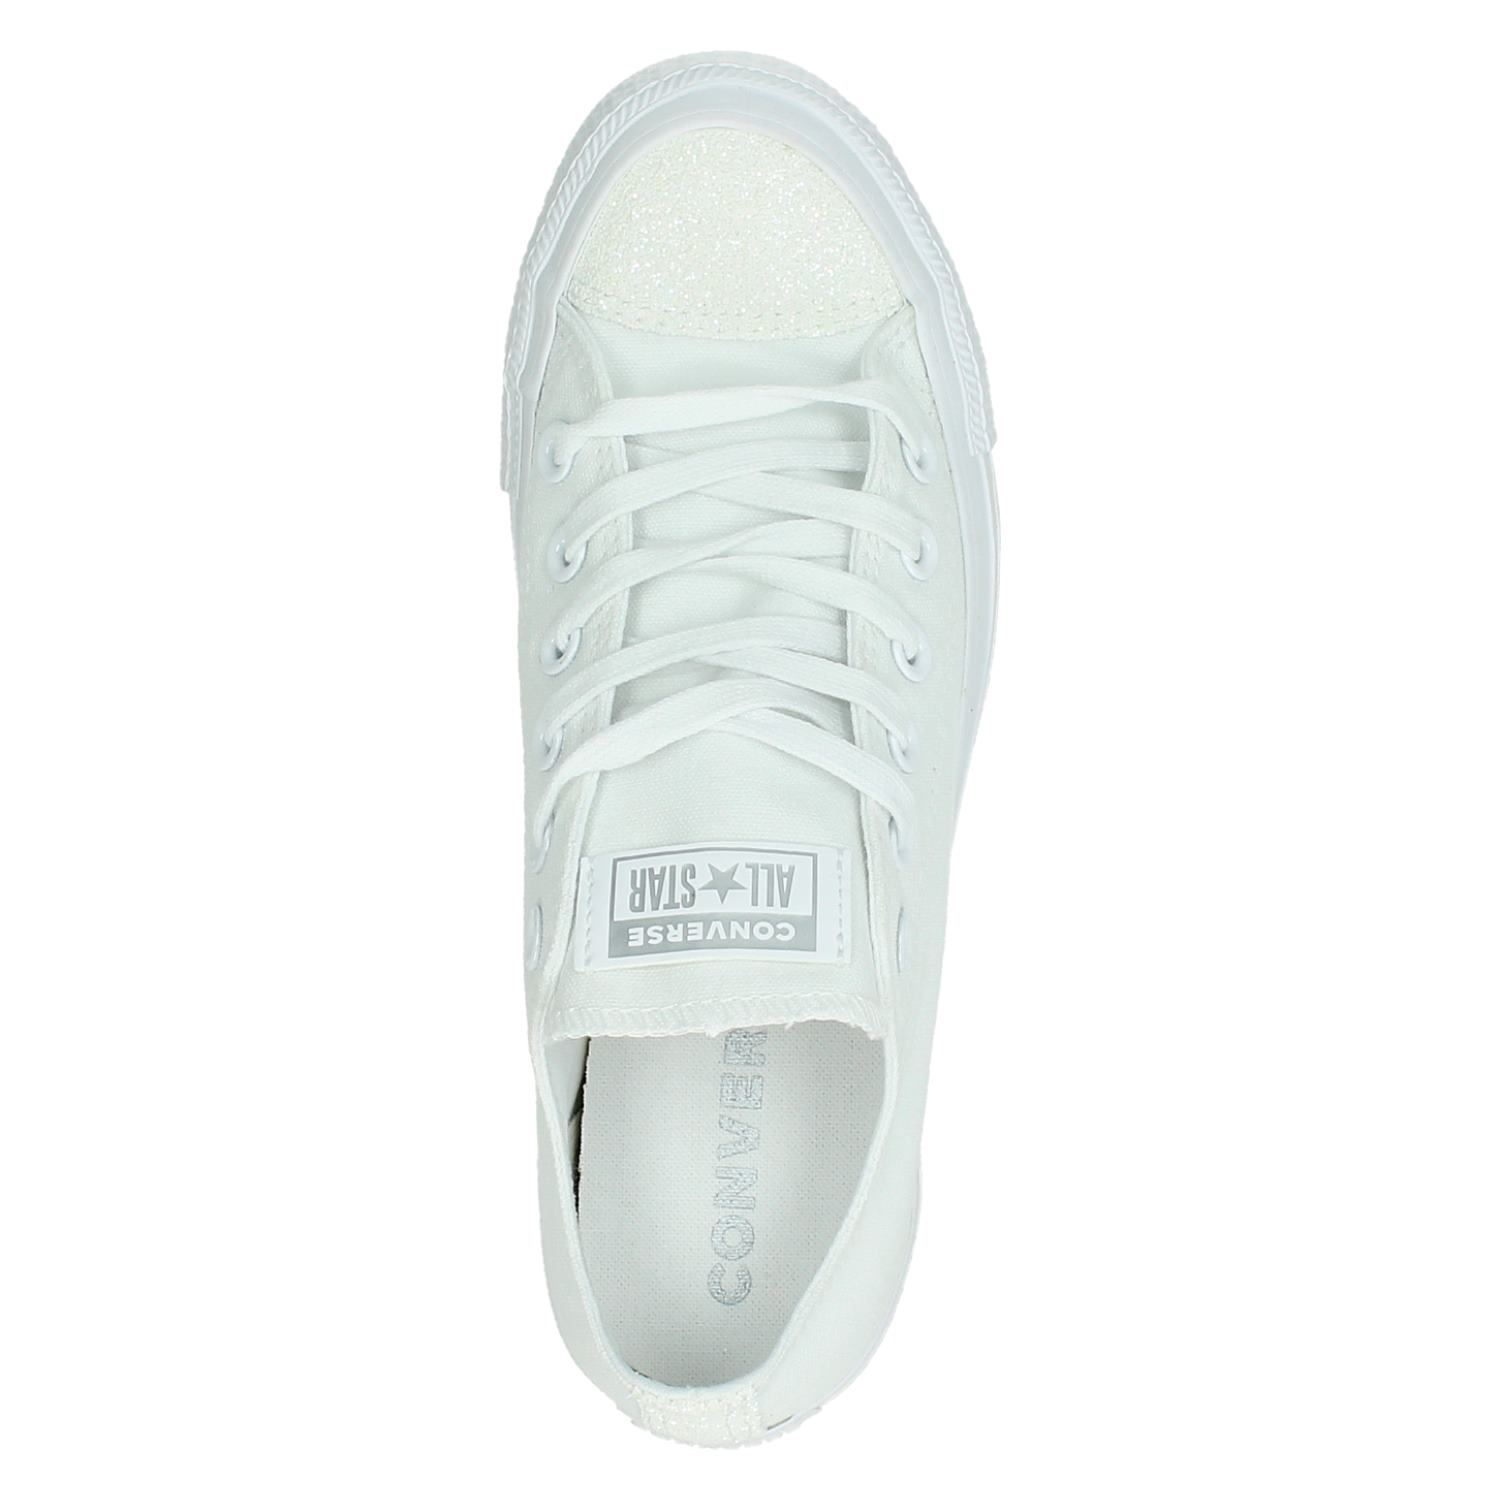 Converse C AS Ox glitter - Lage sneakers voor dames - Wit pLRfY2a